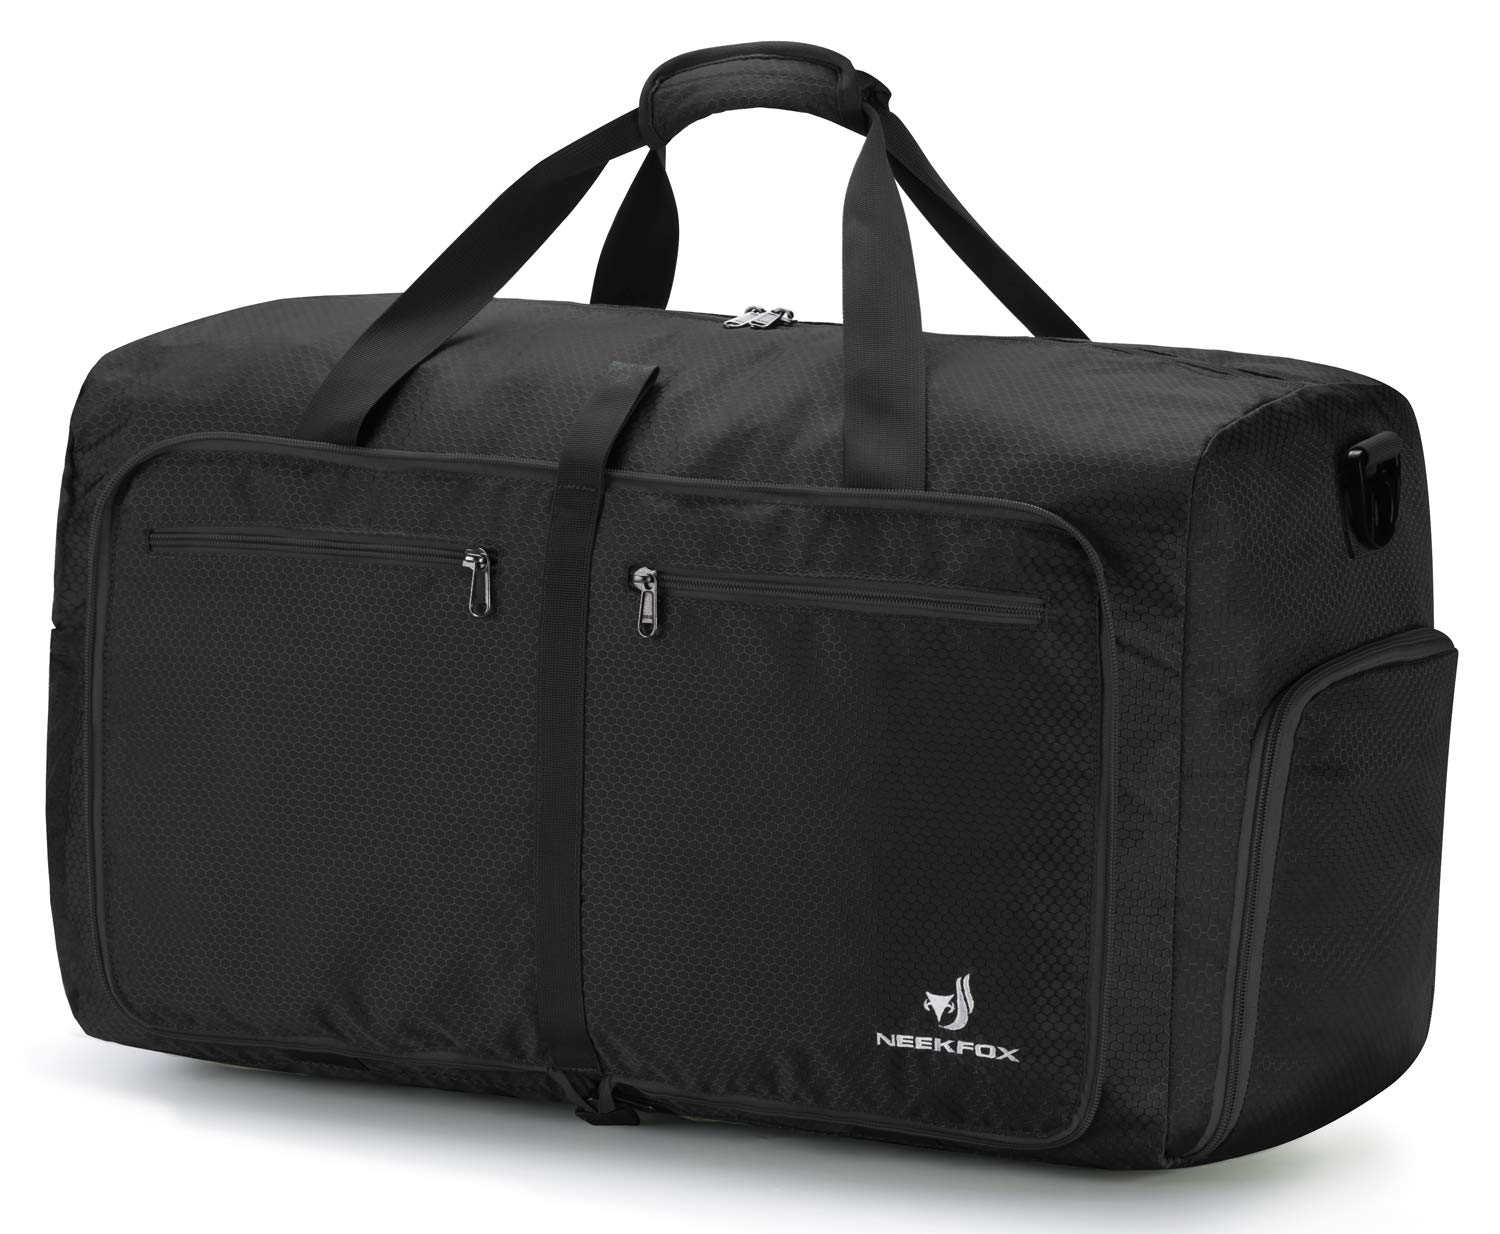 NEEKFOX Foldable Travel Duffel Bag Large Sports Duffle Gym Bag Packable Lightweight Travel Luggage Bag for Men Women (60L)